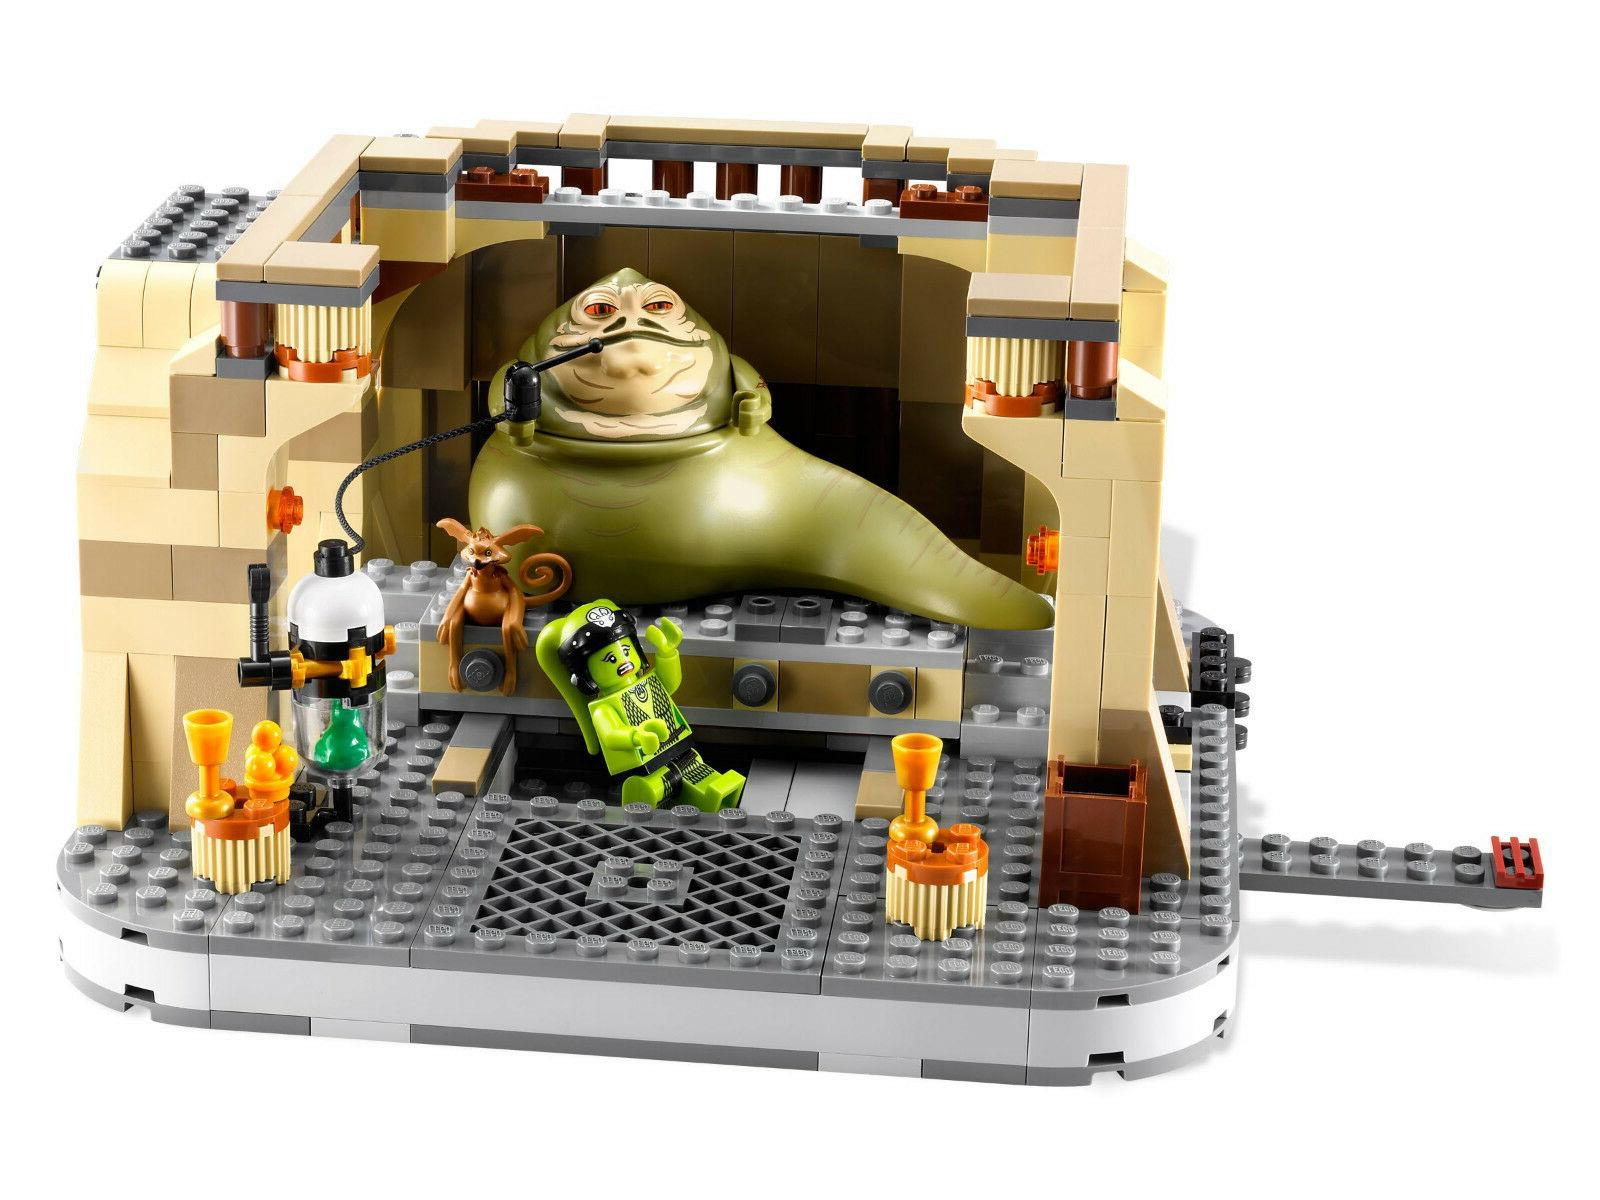 LEGO STAR PALACE NEW RETIRED RETURN OF THE JEDI